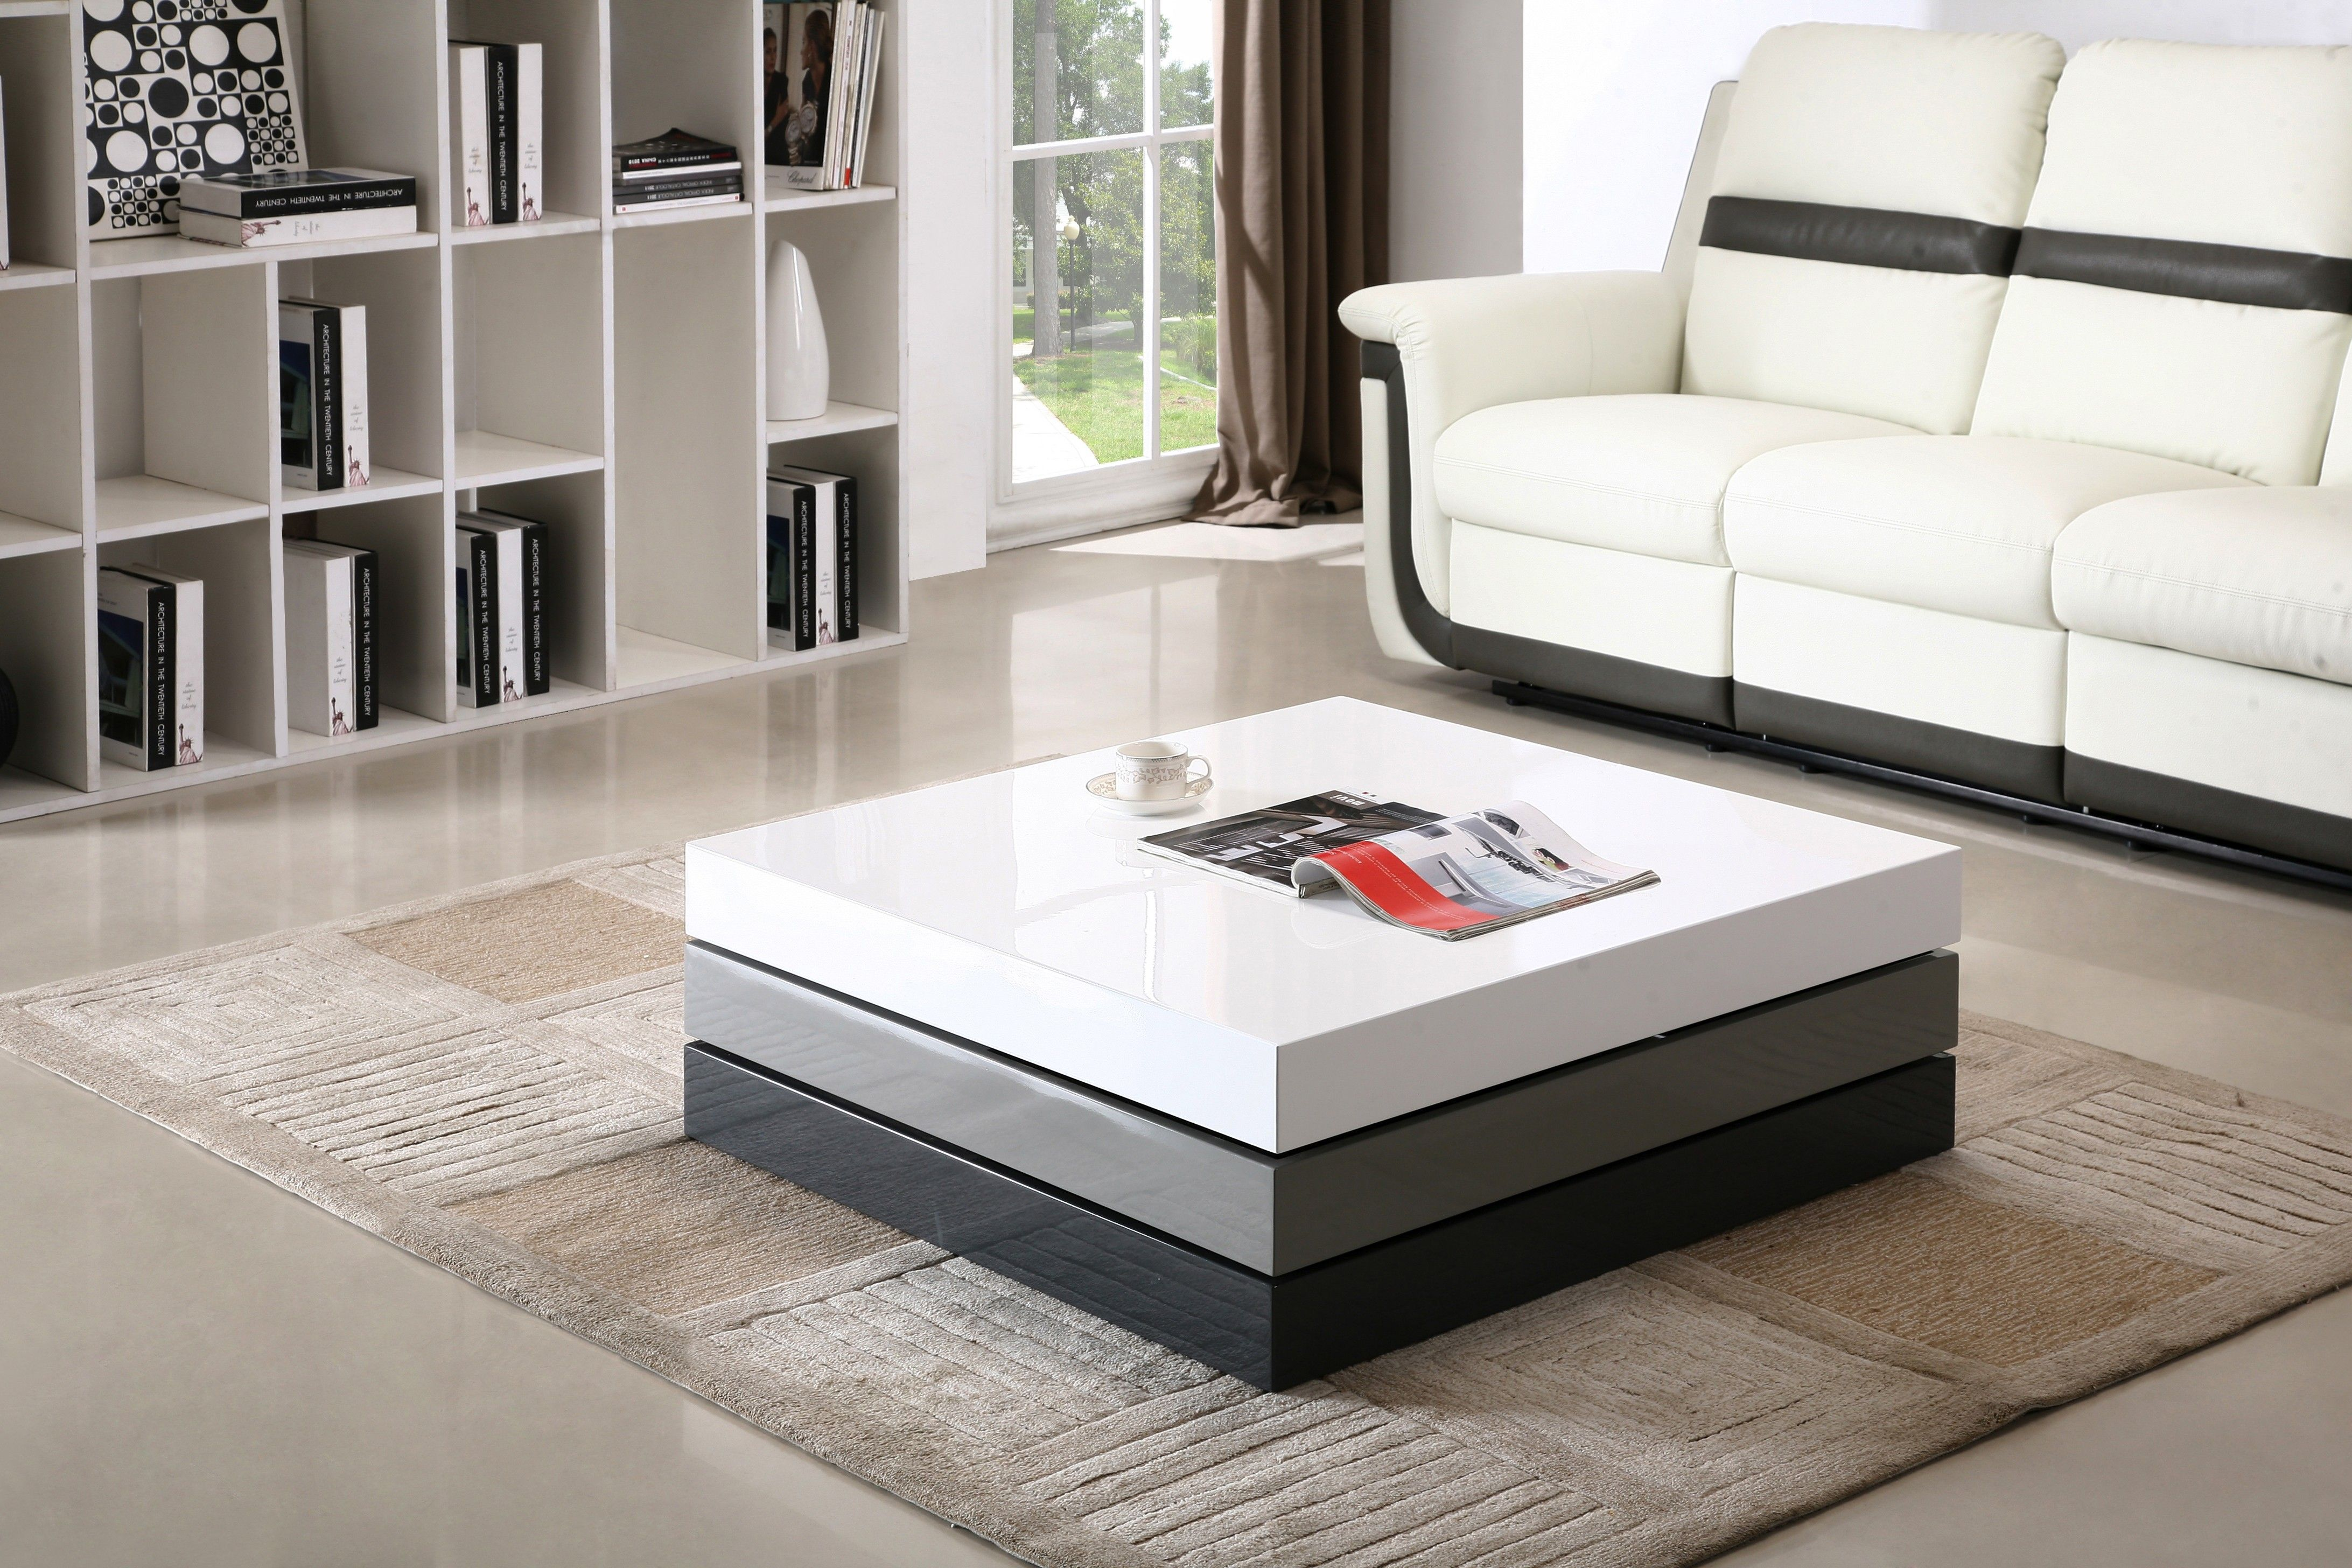 Modern Design A Stunning Architectural Coffee Table With Three